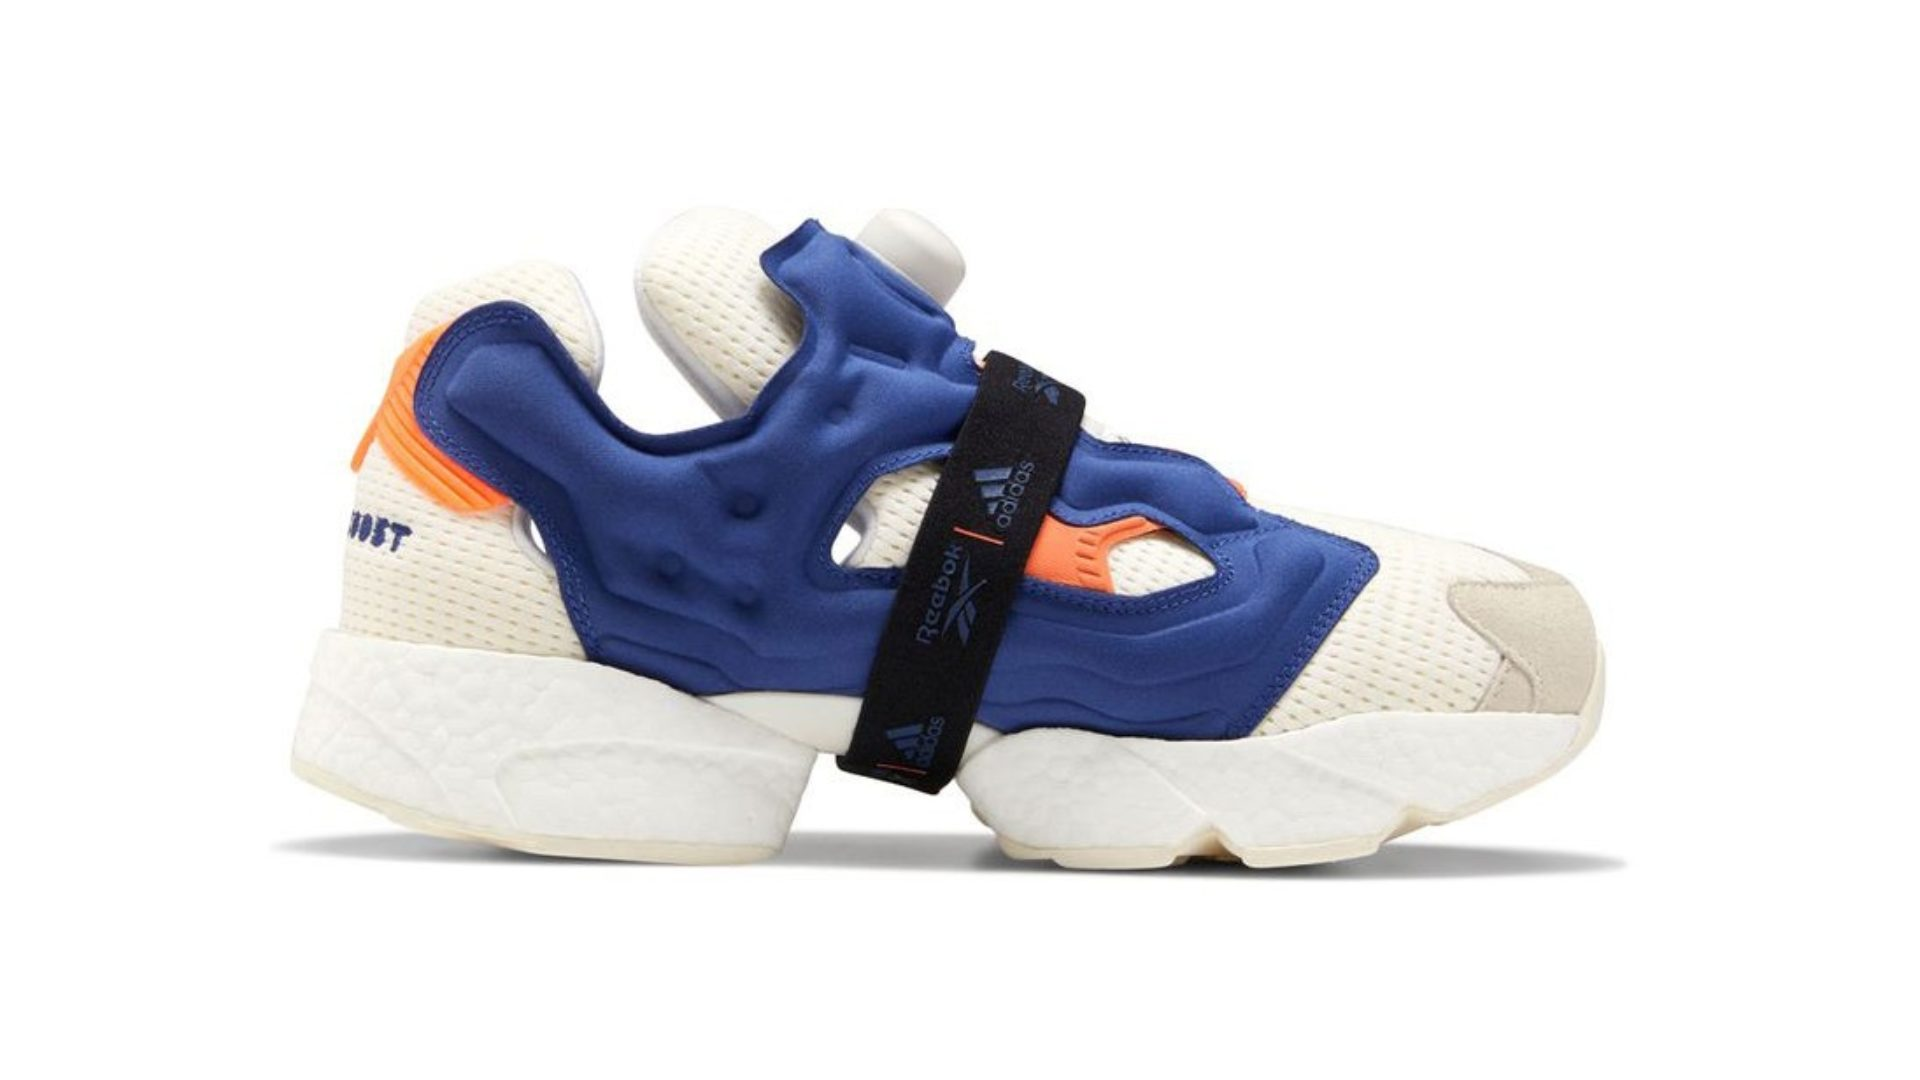 Reebok And Adidas Collaborated On A Special Sneaker